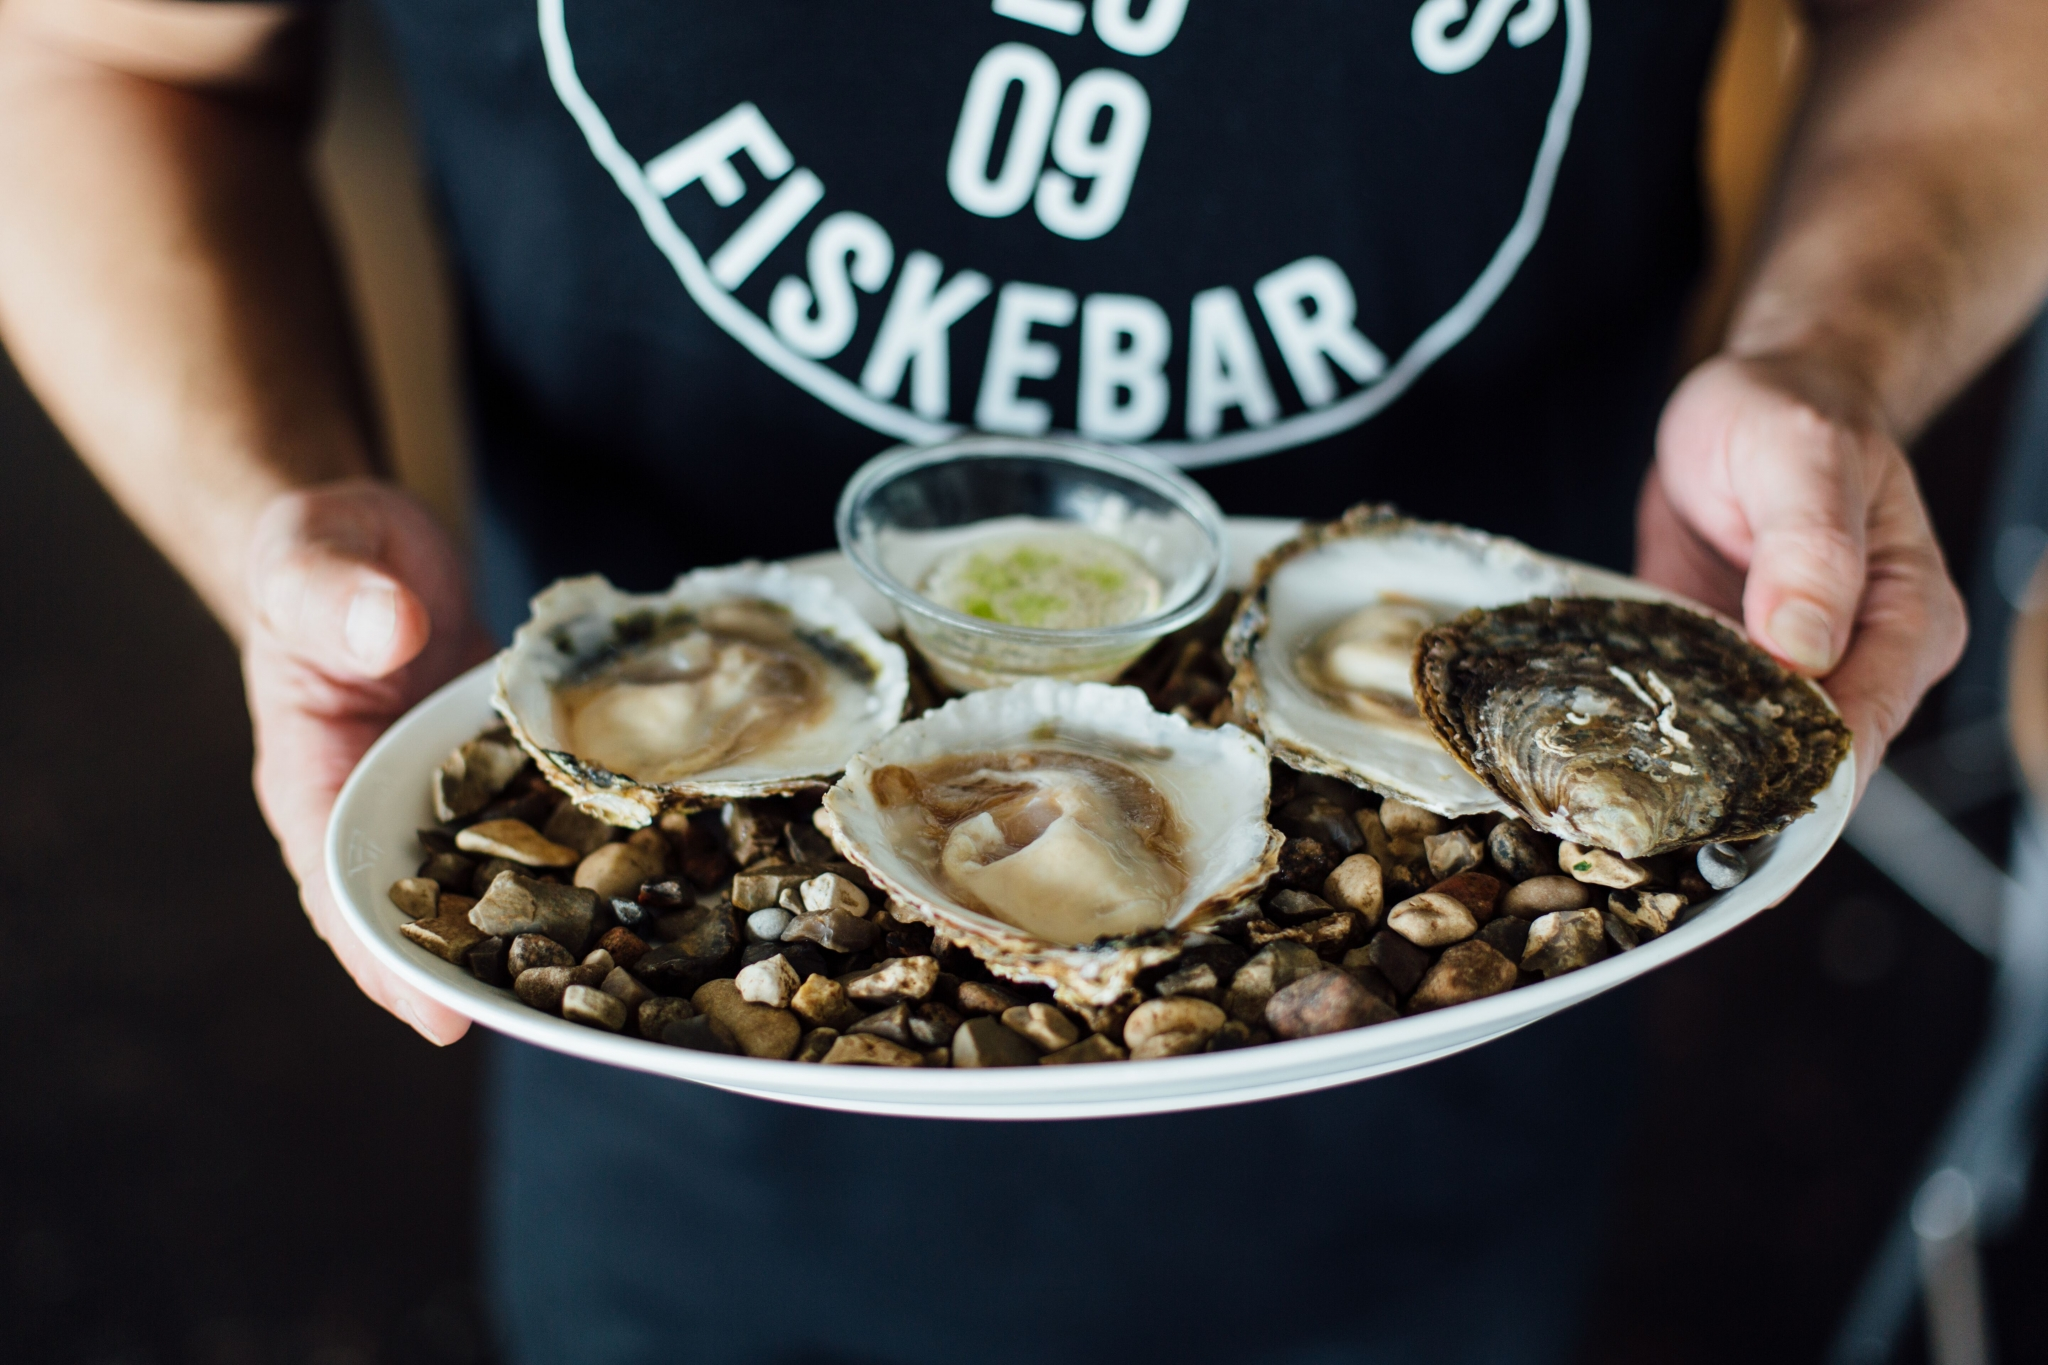 Oysters at Fiskebar, Copenhagen | Photo: Oscar Haumann